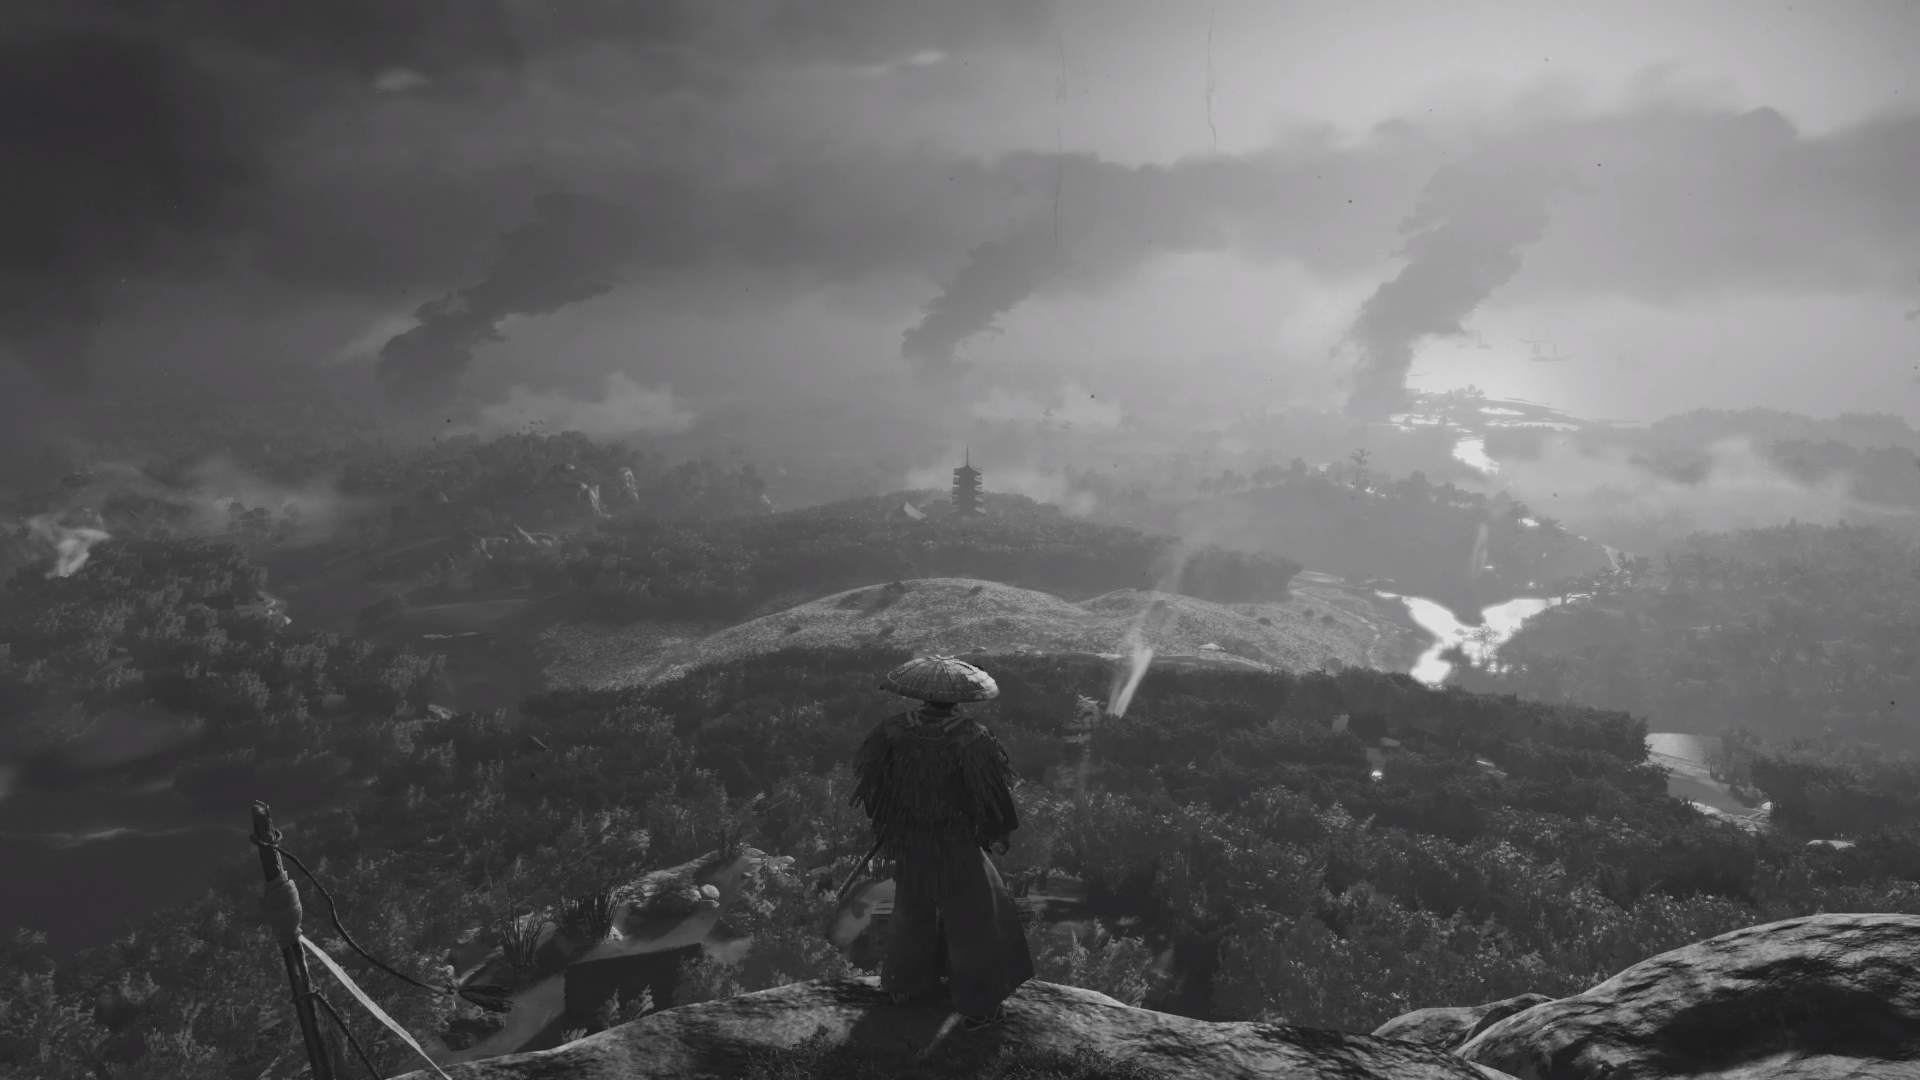 https://www.gamecored.com/wp-content/uploads/2020/05/ghost-of-tsushima-samurai-film-filter-trailer.jpg